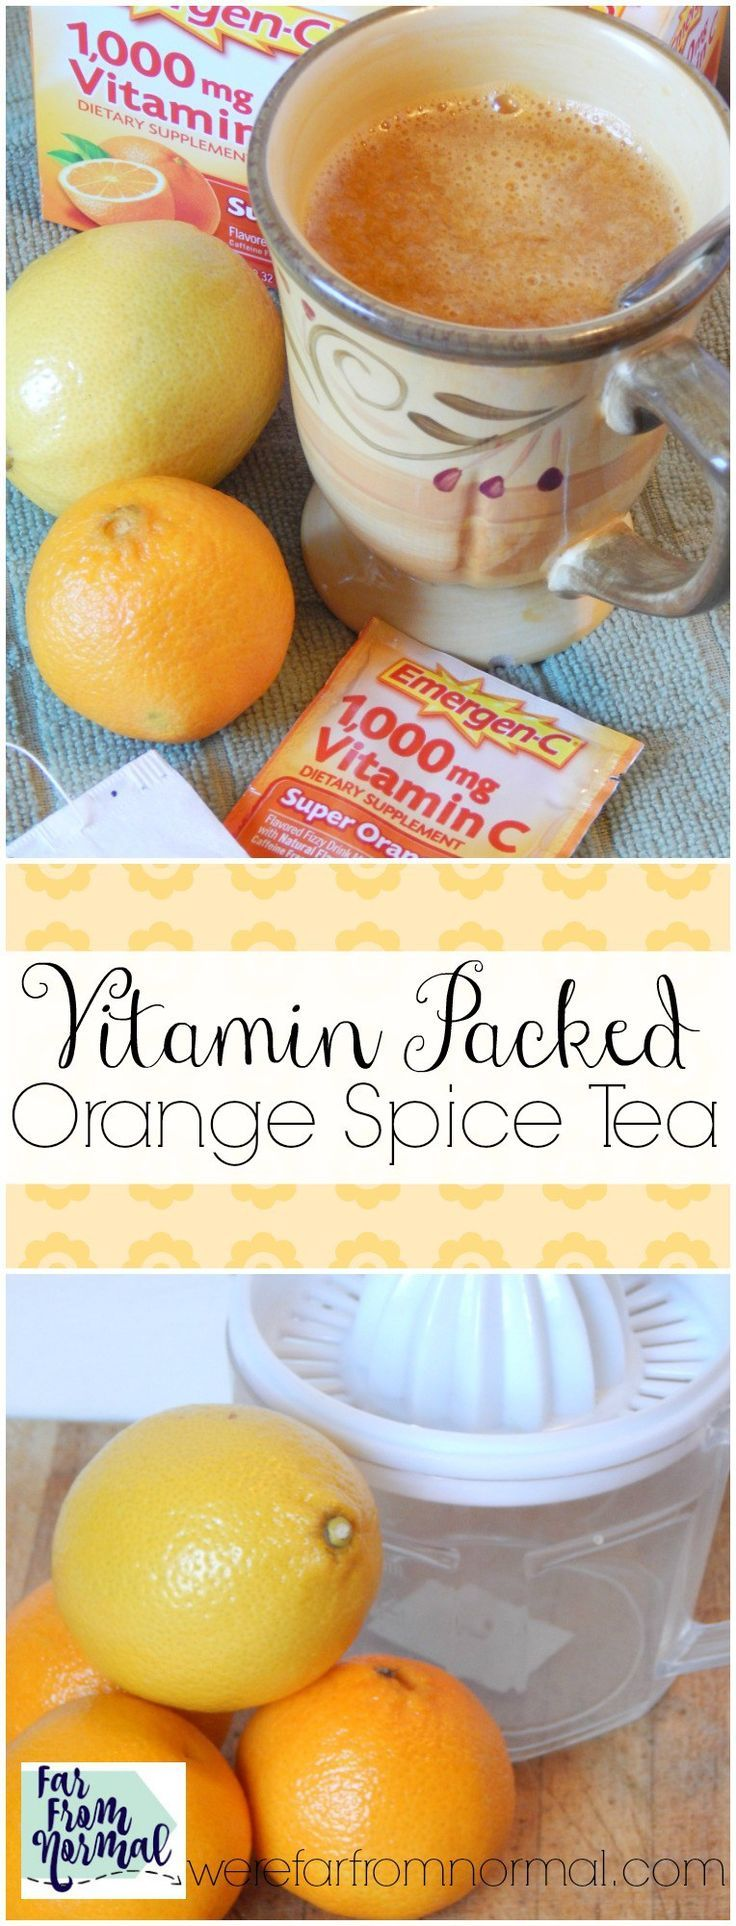 This tea is so delicious & packed with vitamins! Orange flavor, cinnamon and spices, the perfect way to enjoy your vitamins! #ad #HowDoYouEmergenC /walgreens/